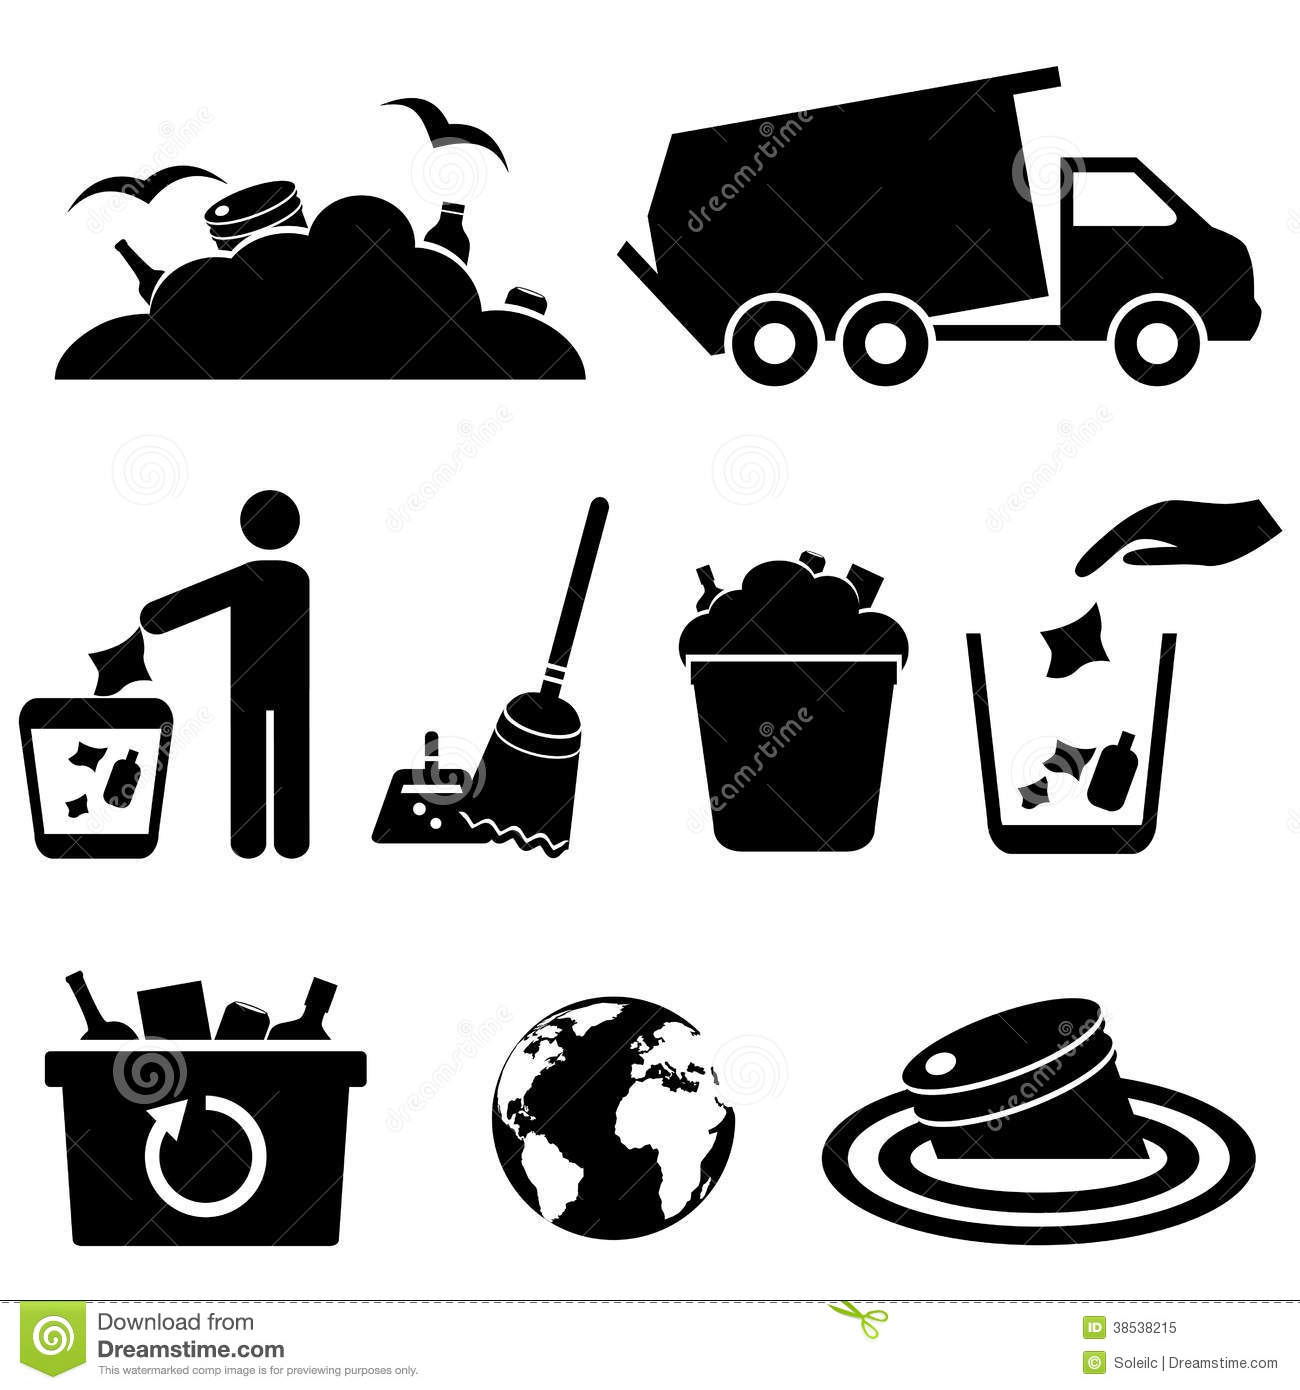 Garbage, Trash And Waste Icons Royalty Free Stock Photo - Image ...